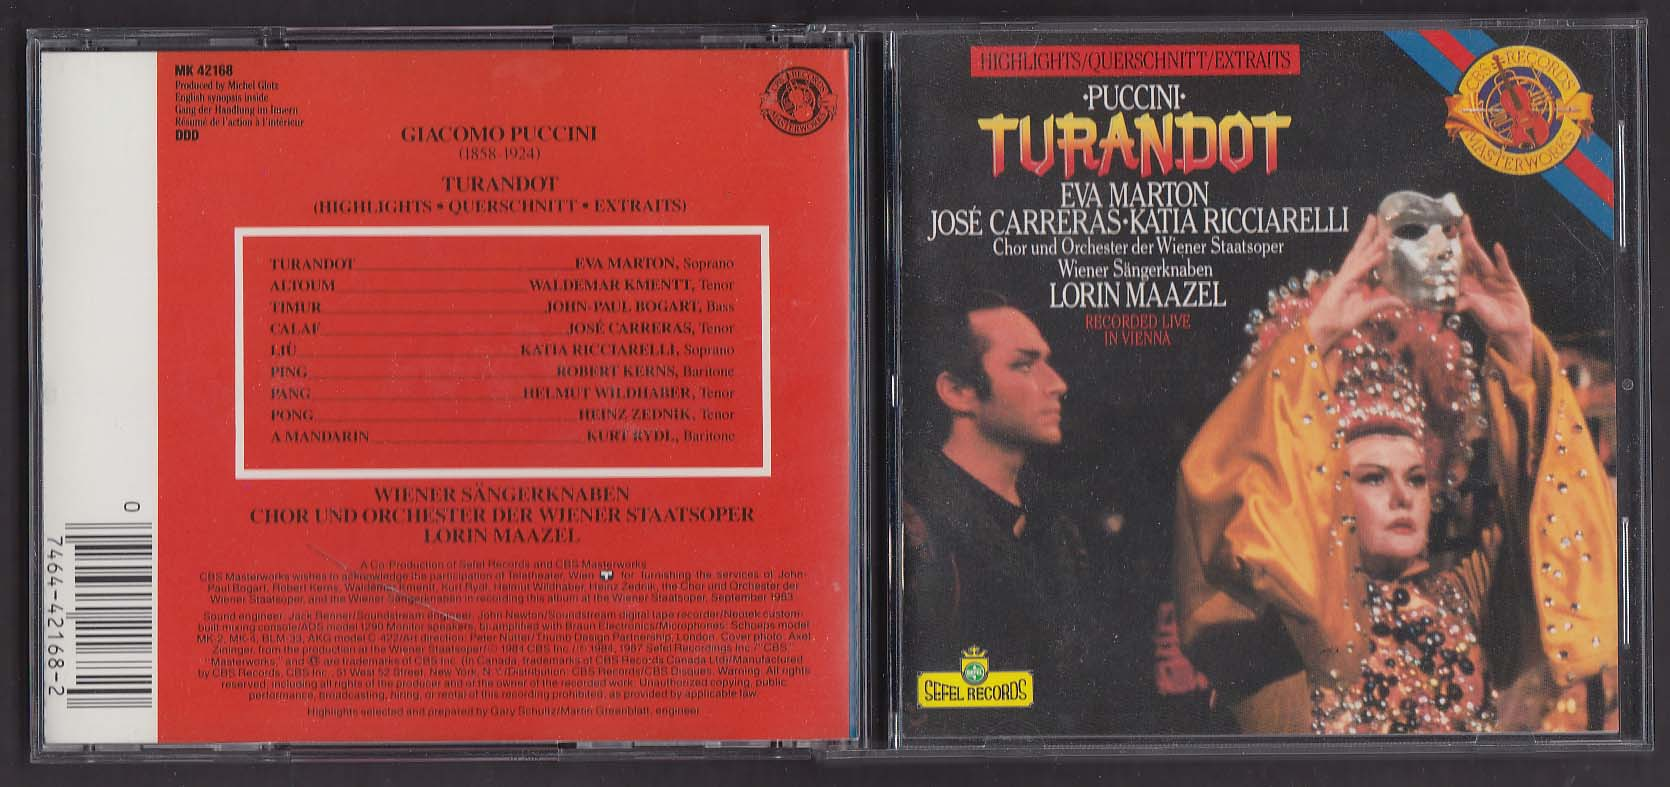 Image for Puccini: Turandot Highlights MK 42168 CBS CD 1987